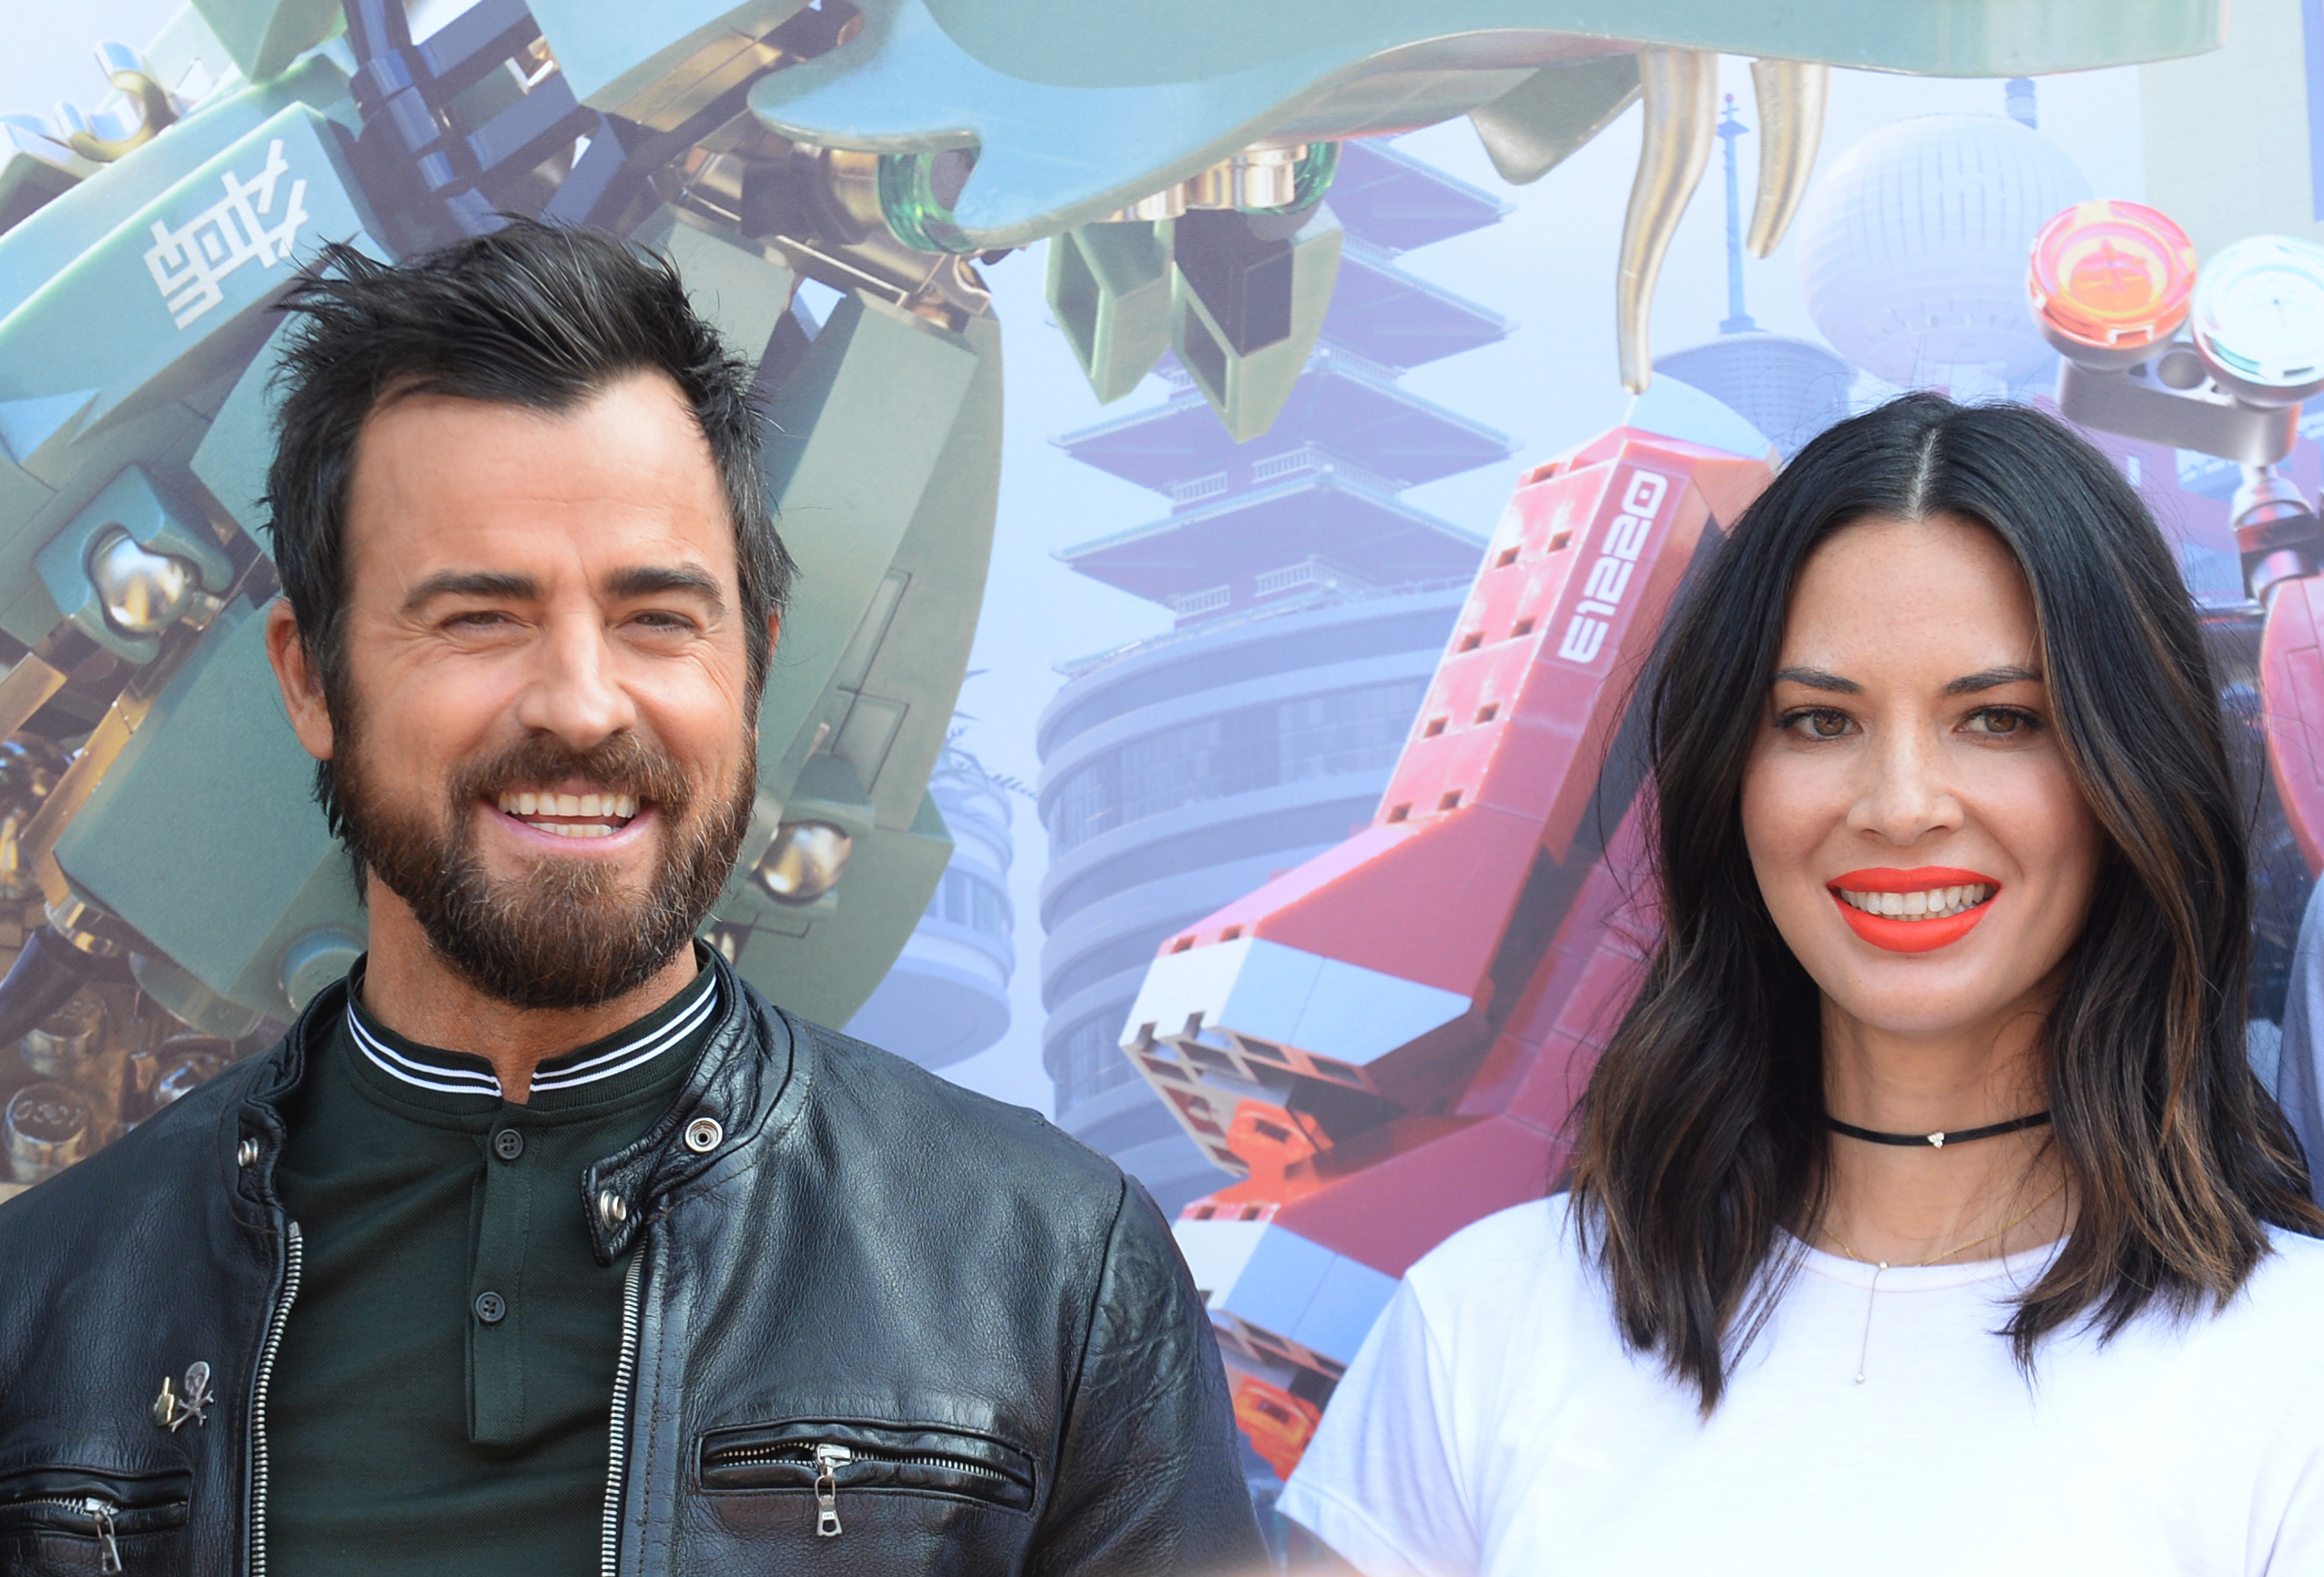 """Justin Theroux and Olivia Munn attend a photo call for """"The LEGO Ninjago Movie"""" at Comic Con in San Diego on July 21, 2017."""